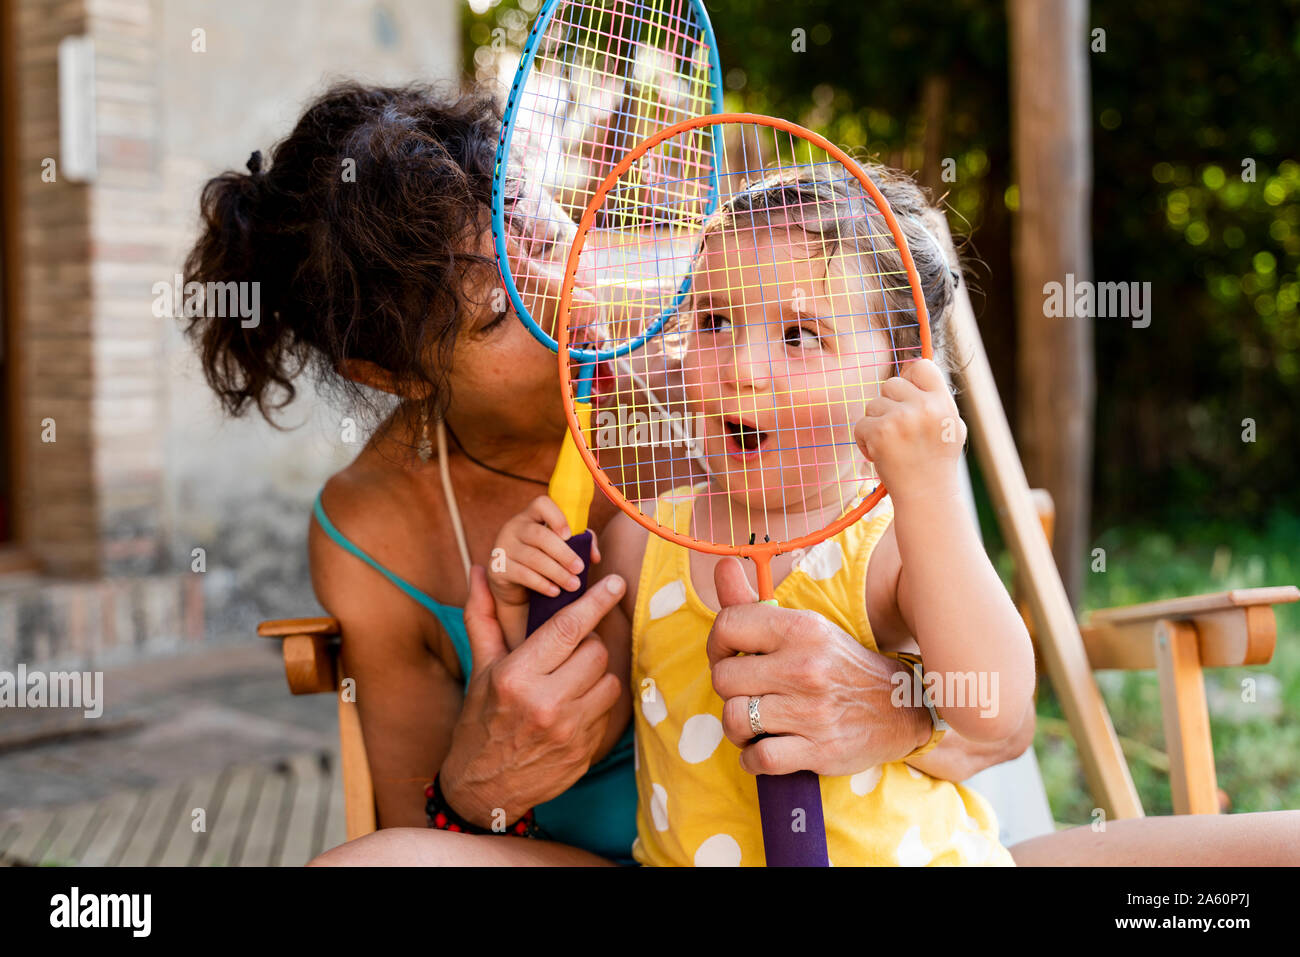 Grandmother playing with little girl and badminton rackets outdoors Stock Photo